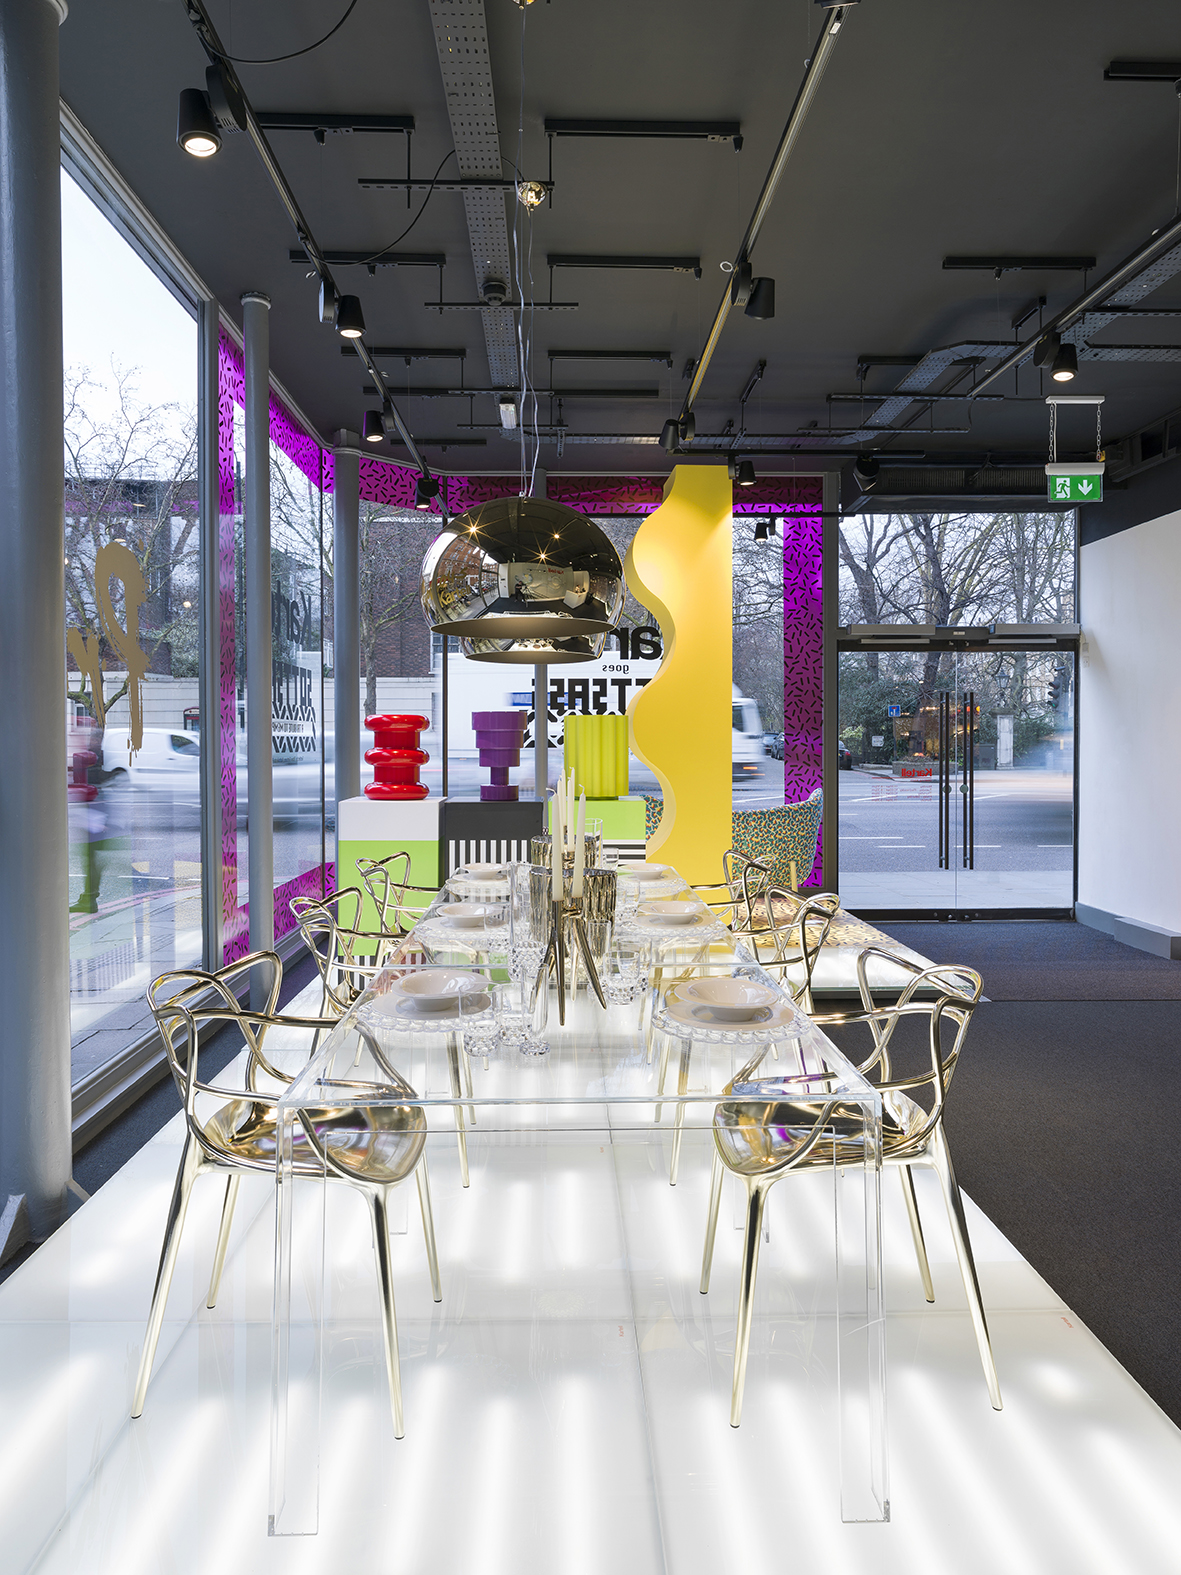 16_Kartell London Flagship Store_By Andrew Meredith.jpg